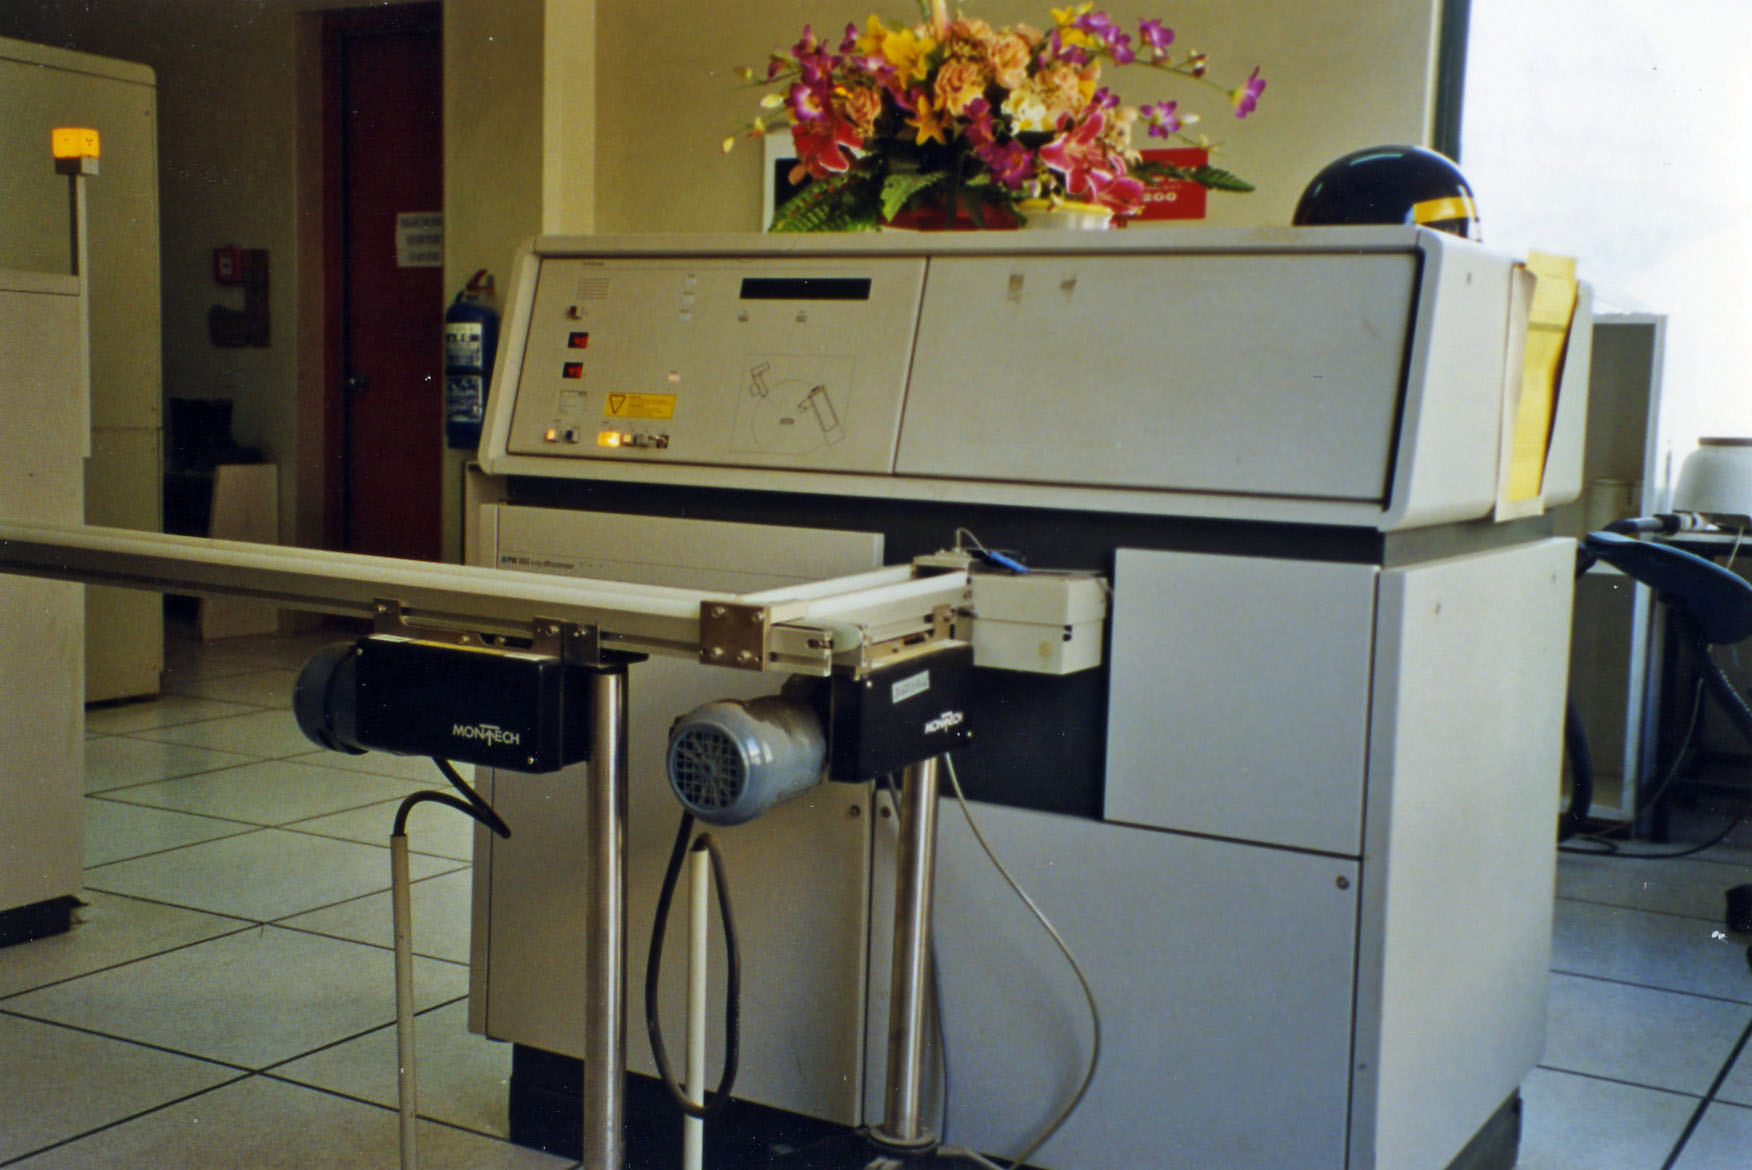 Online X-ray diffraction with automatic sample feed for free calcium oxide measurement